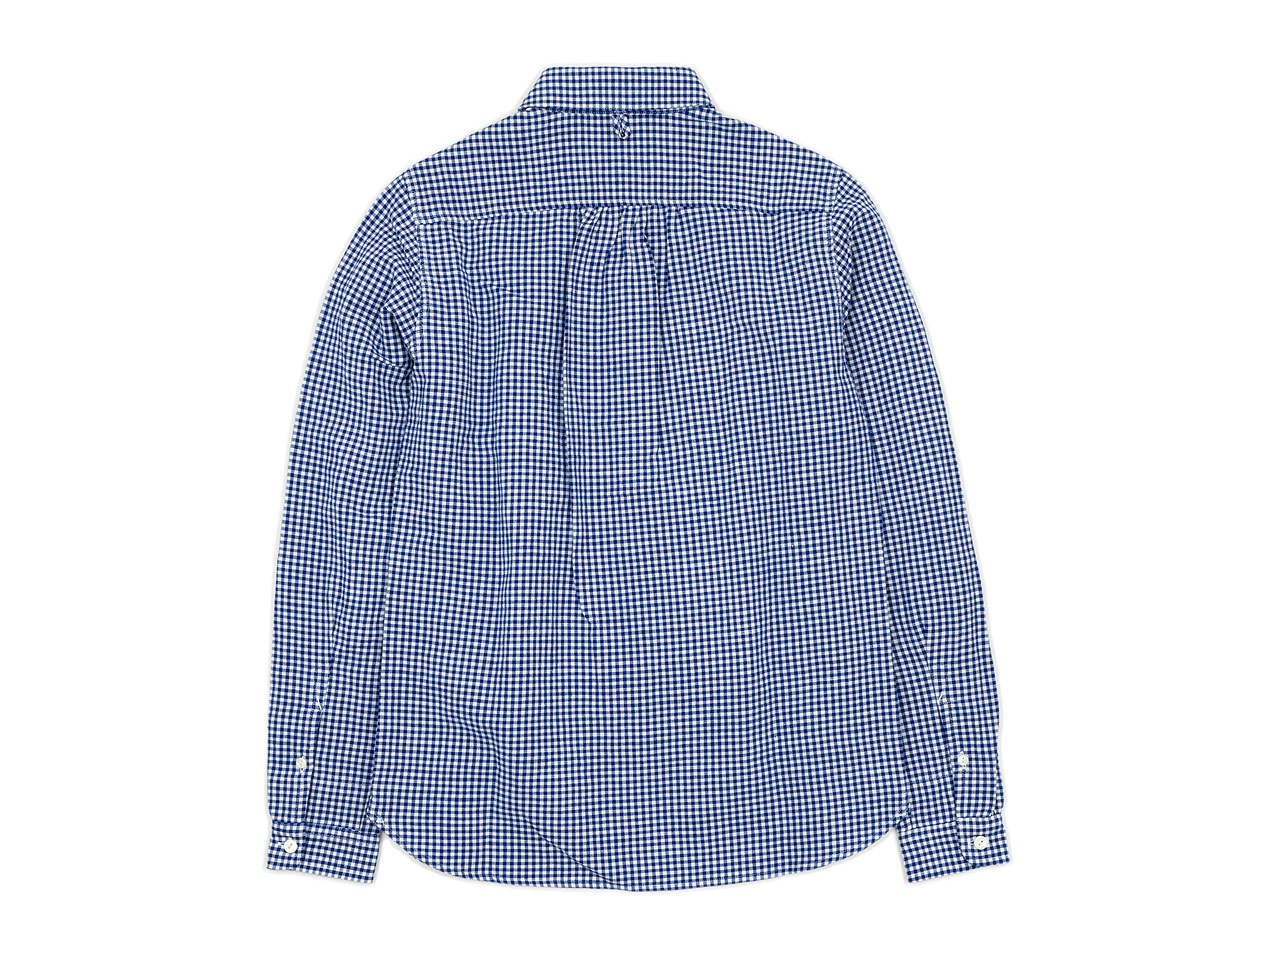 maillot Sunset round collor work gingam check shirts